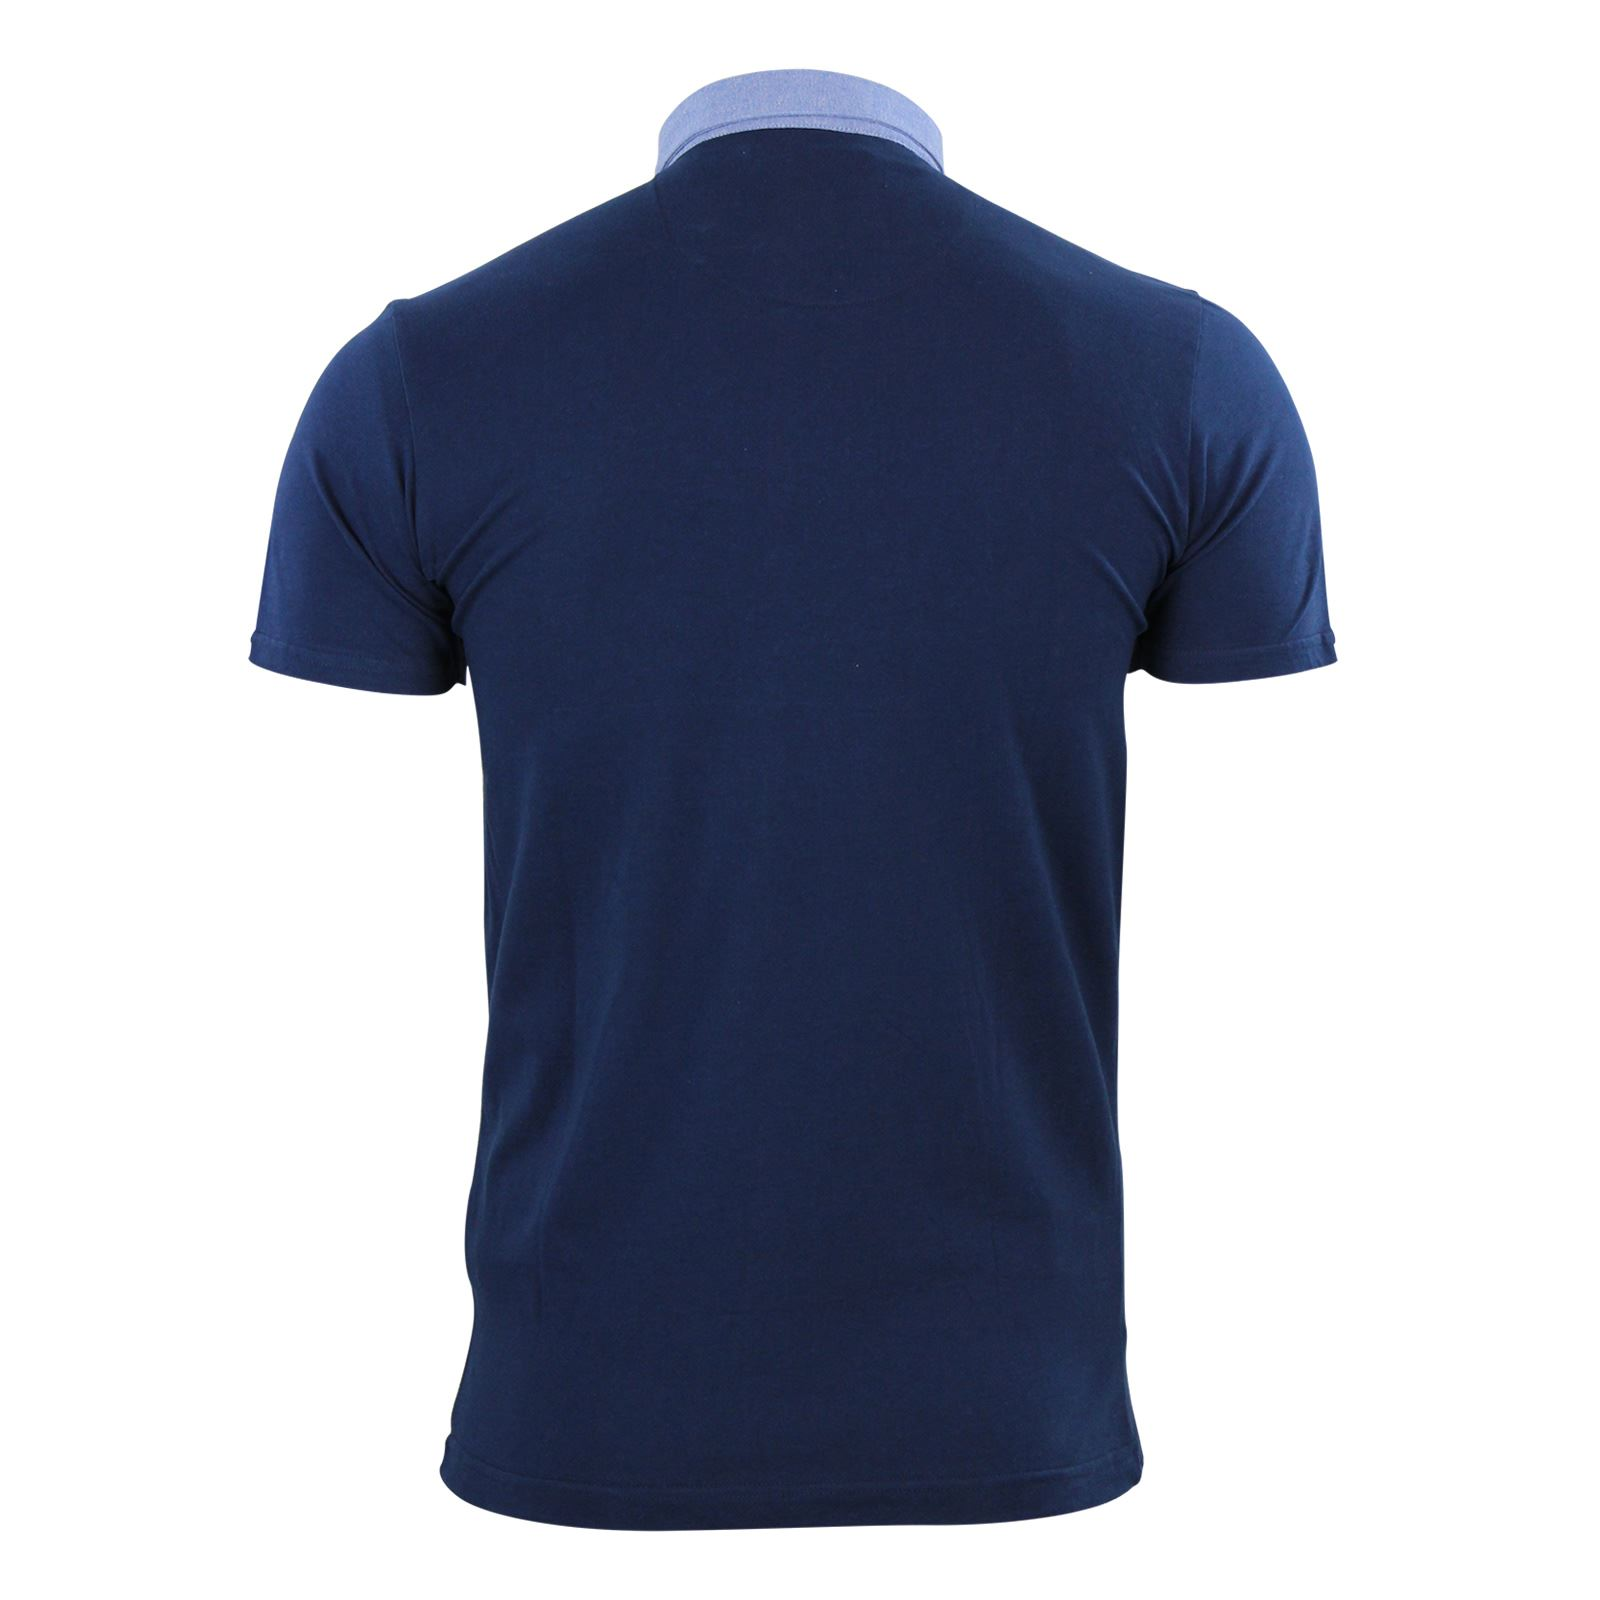 Brave-Soul-Glover-Mens-Polo-T-Shirt-Cotton-Collared-Short-Sleeve-Casual-Top thumbnail 21